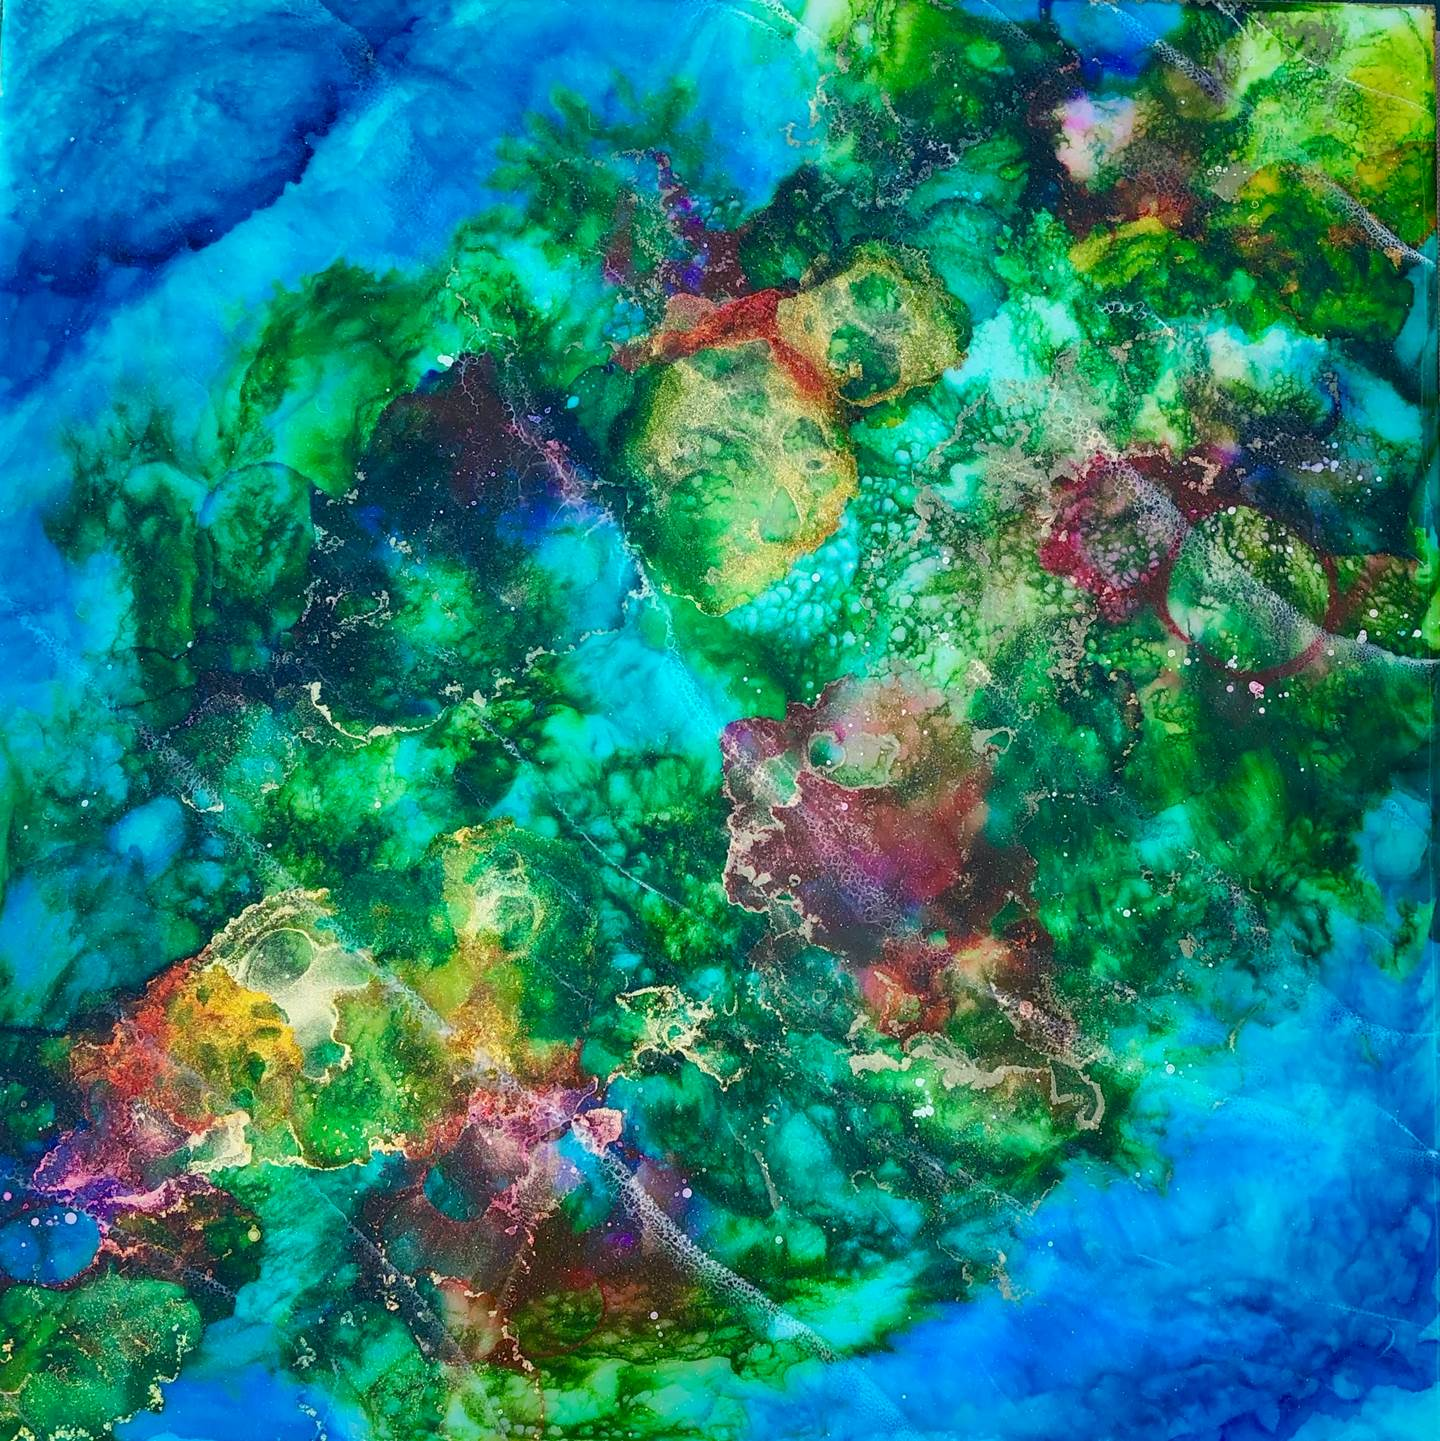 Tidal Drift, original Nature Mixed Technique Painting by Tiffani Buteau